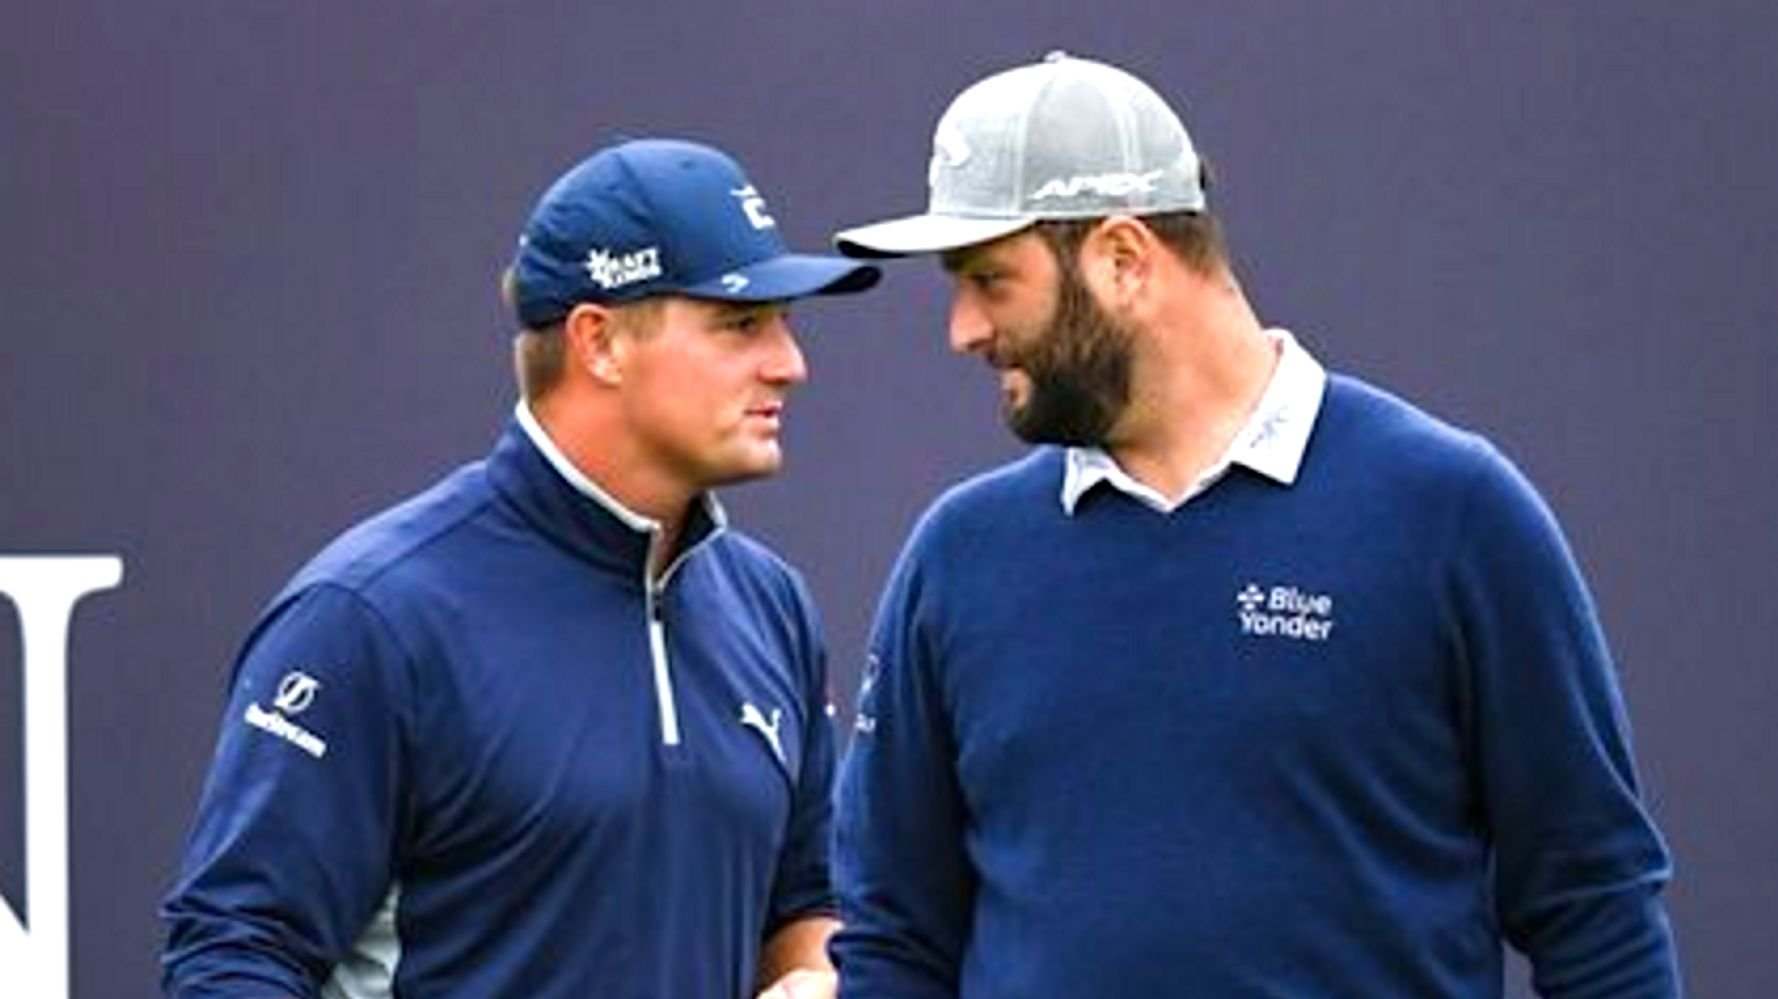 Jon Rahm And Bryson DeChambeau Out Of Olympics After Positive COVID-19 Tests